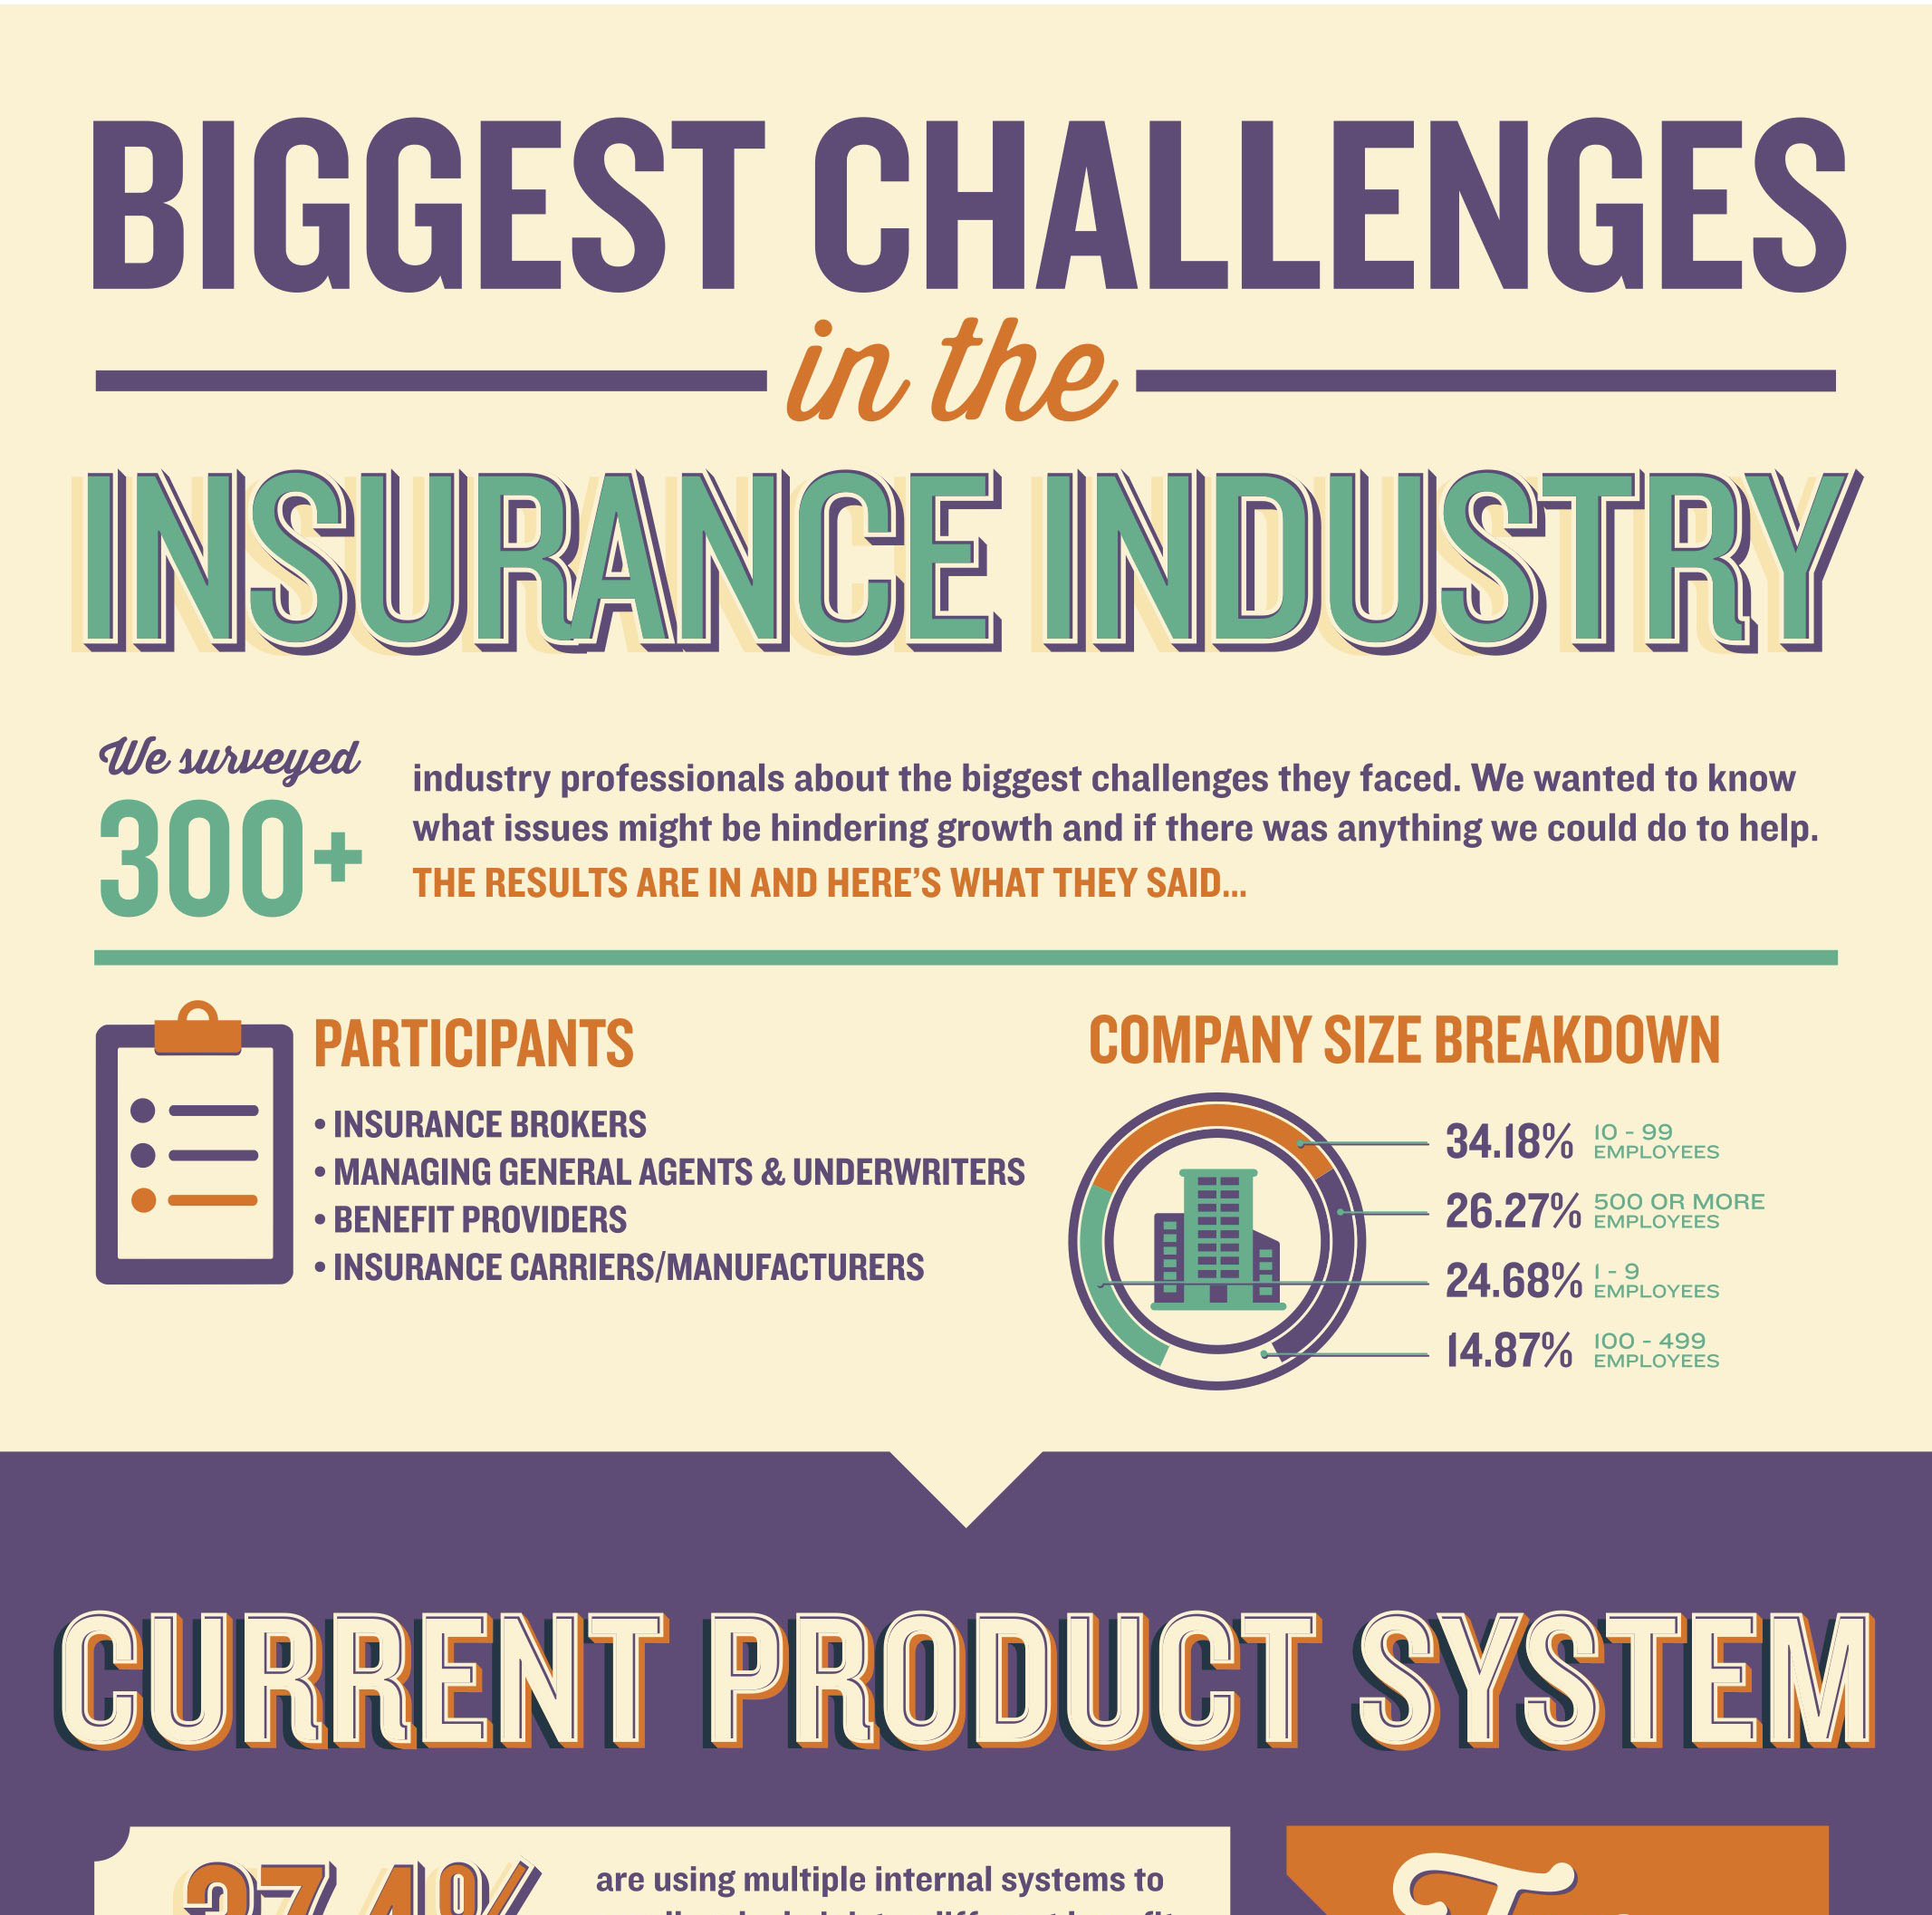 Biggest Challenges in the Insurance Industry